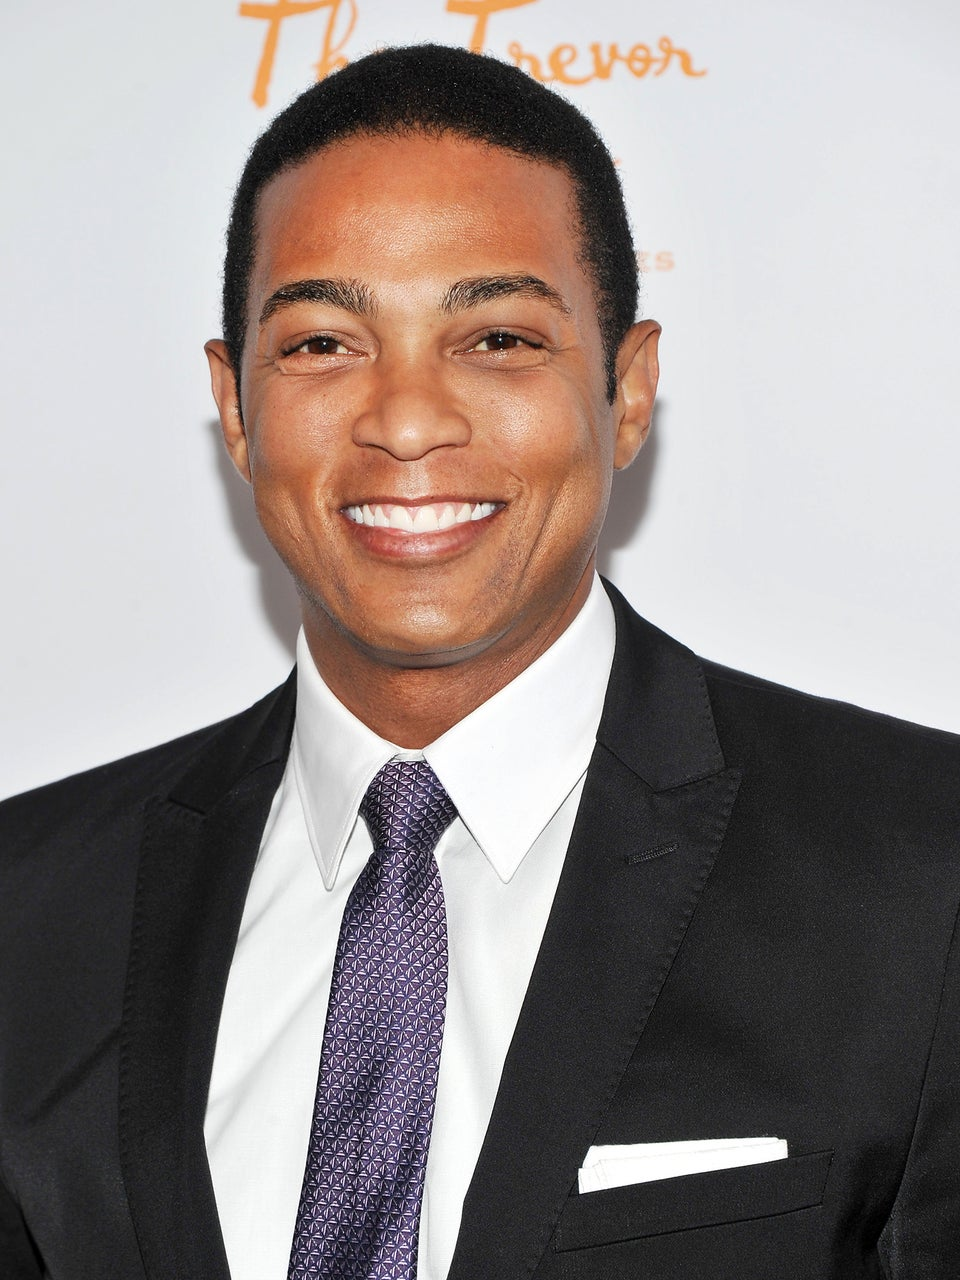 Don Lemon Says He Would Probably Be Like Malcolm X If He Wasn't A Journalist